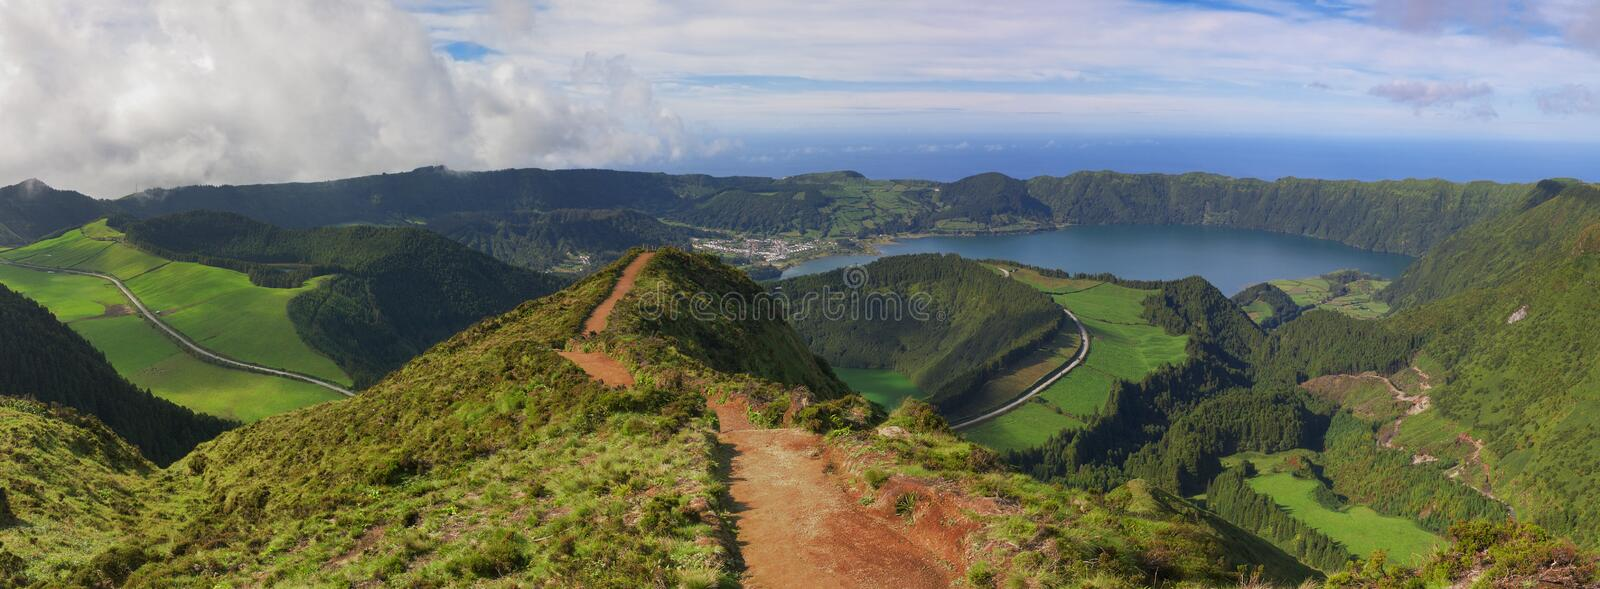 Path to a viewpoint at Sete Cidades, San Miguel, Azores stock photography